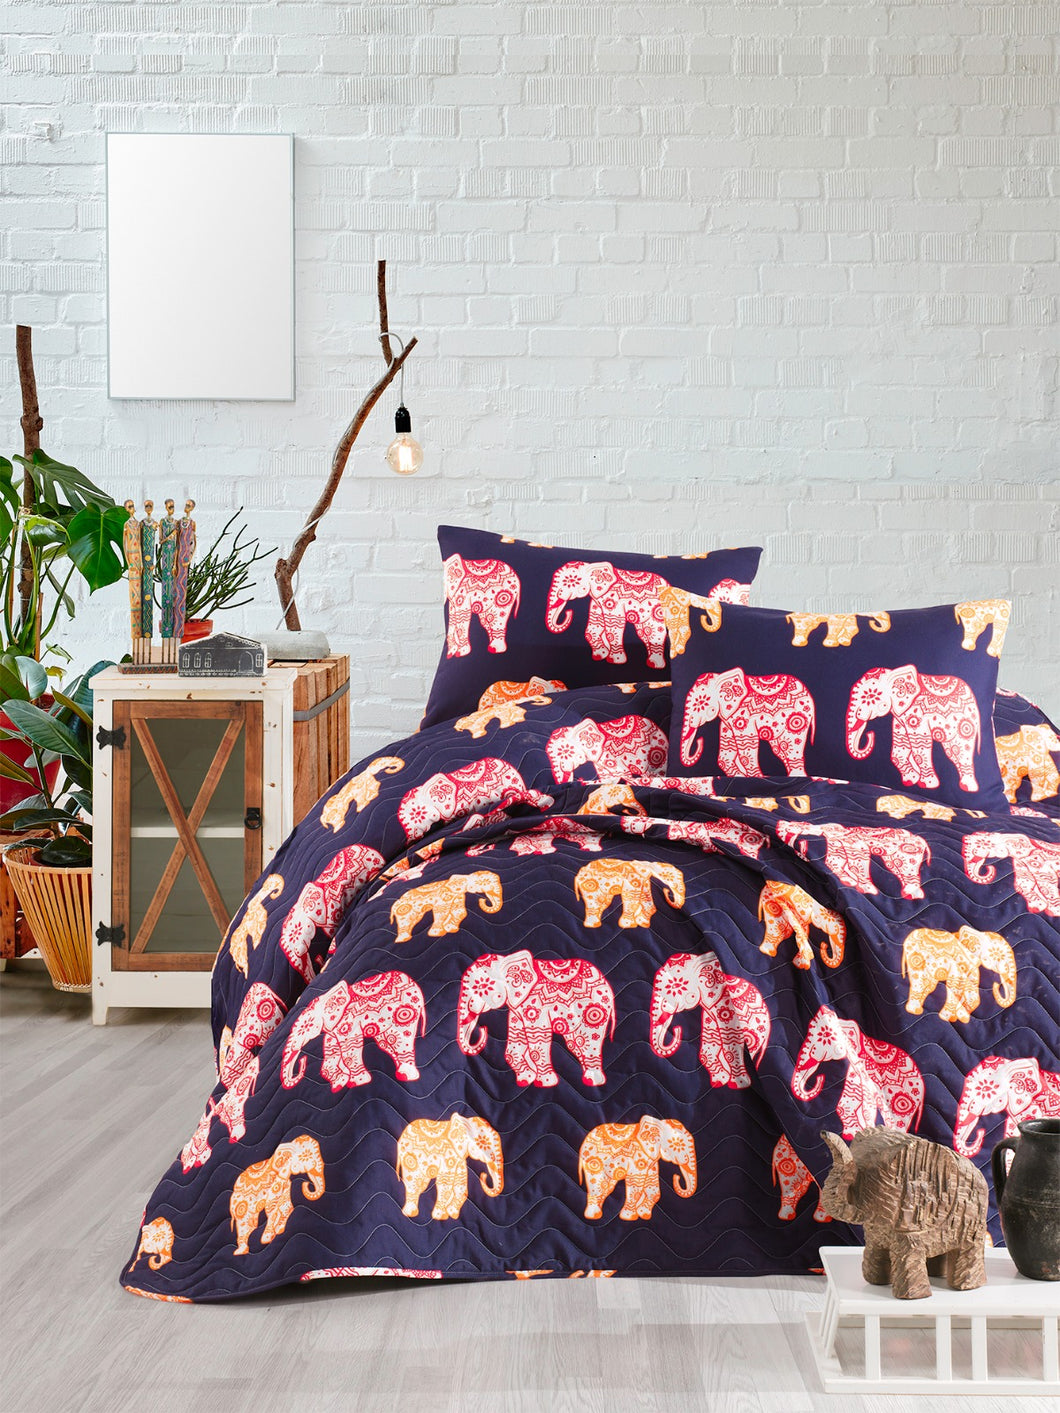 House of Hampton Elephant Bedding Cover Set Queen (78